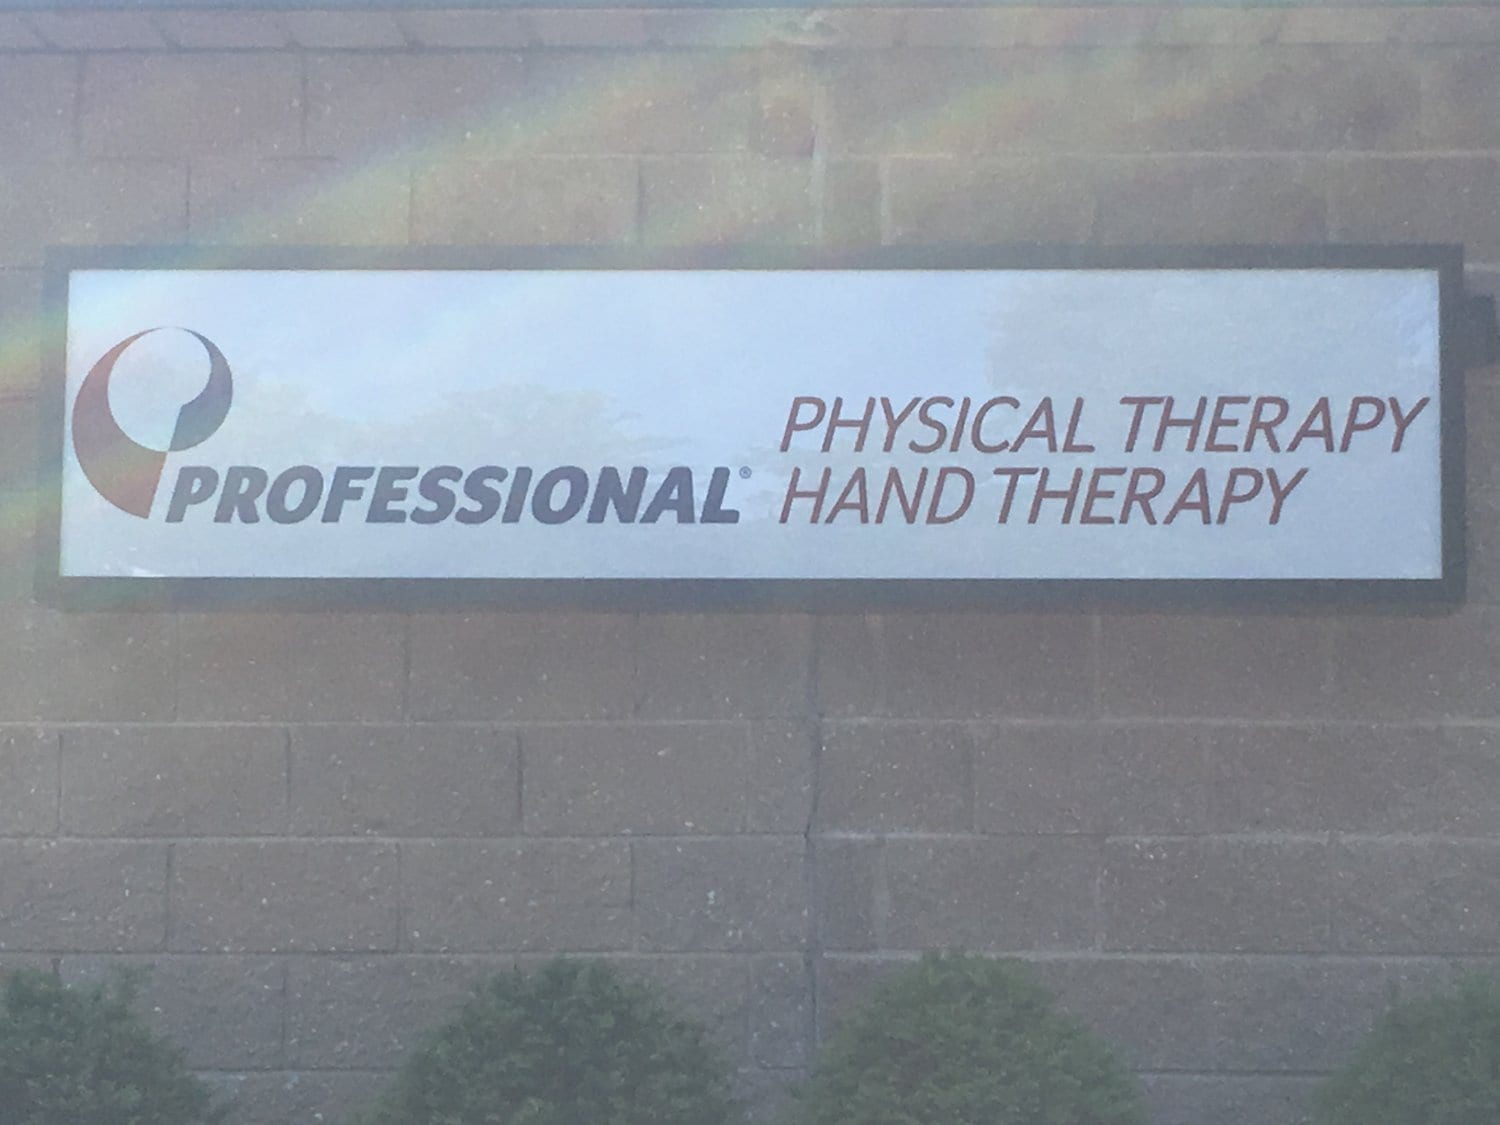 Here is the sign for our physical therapy clinic in West Caldwell.